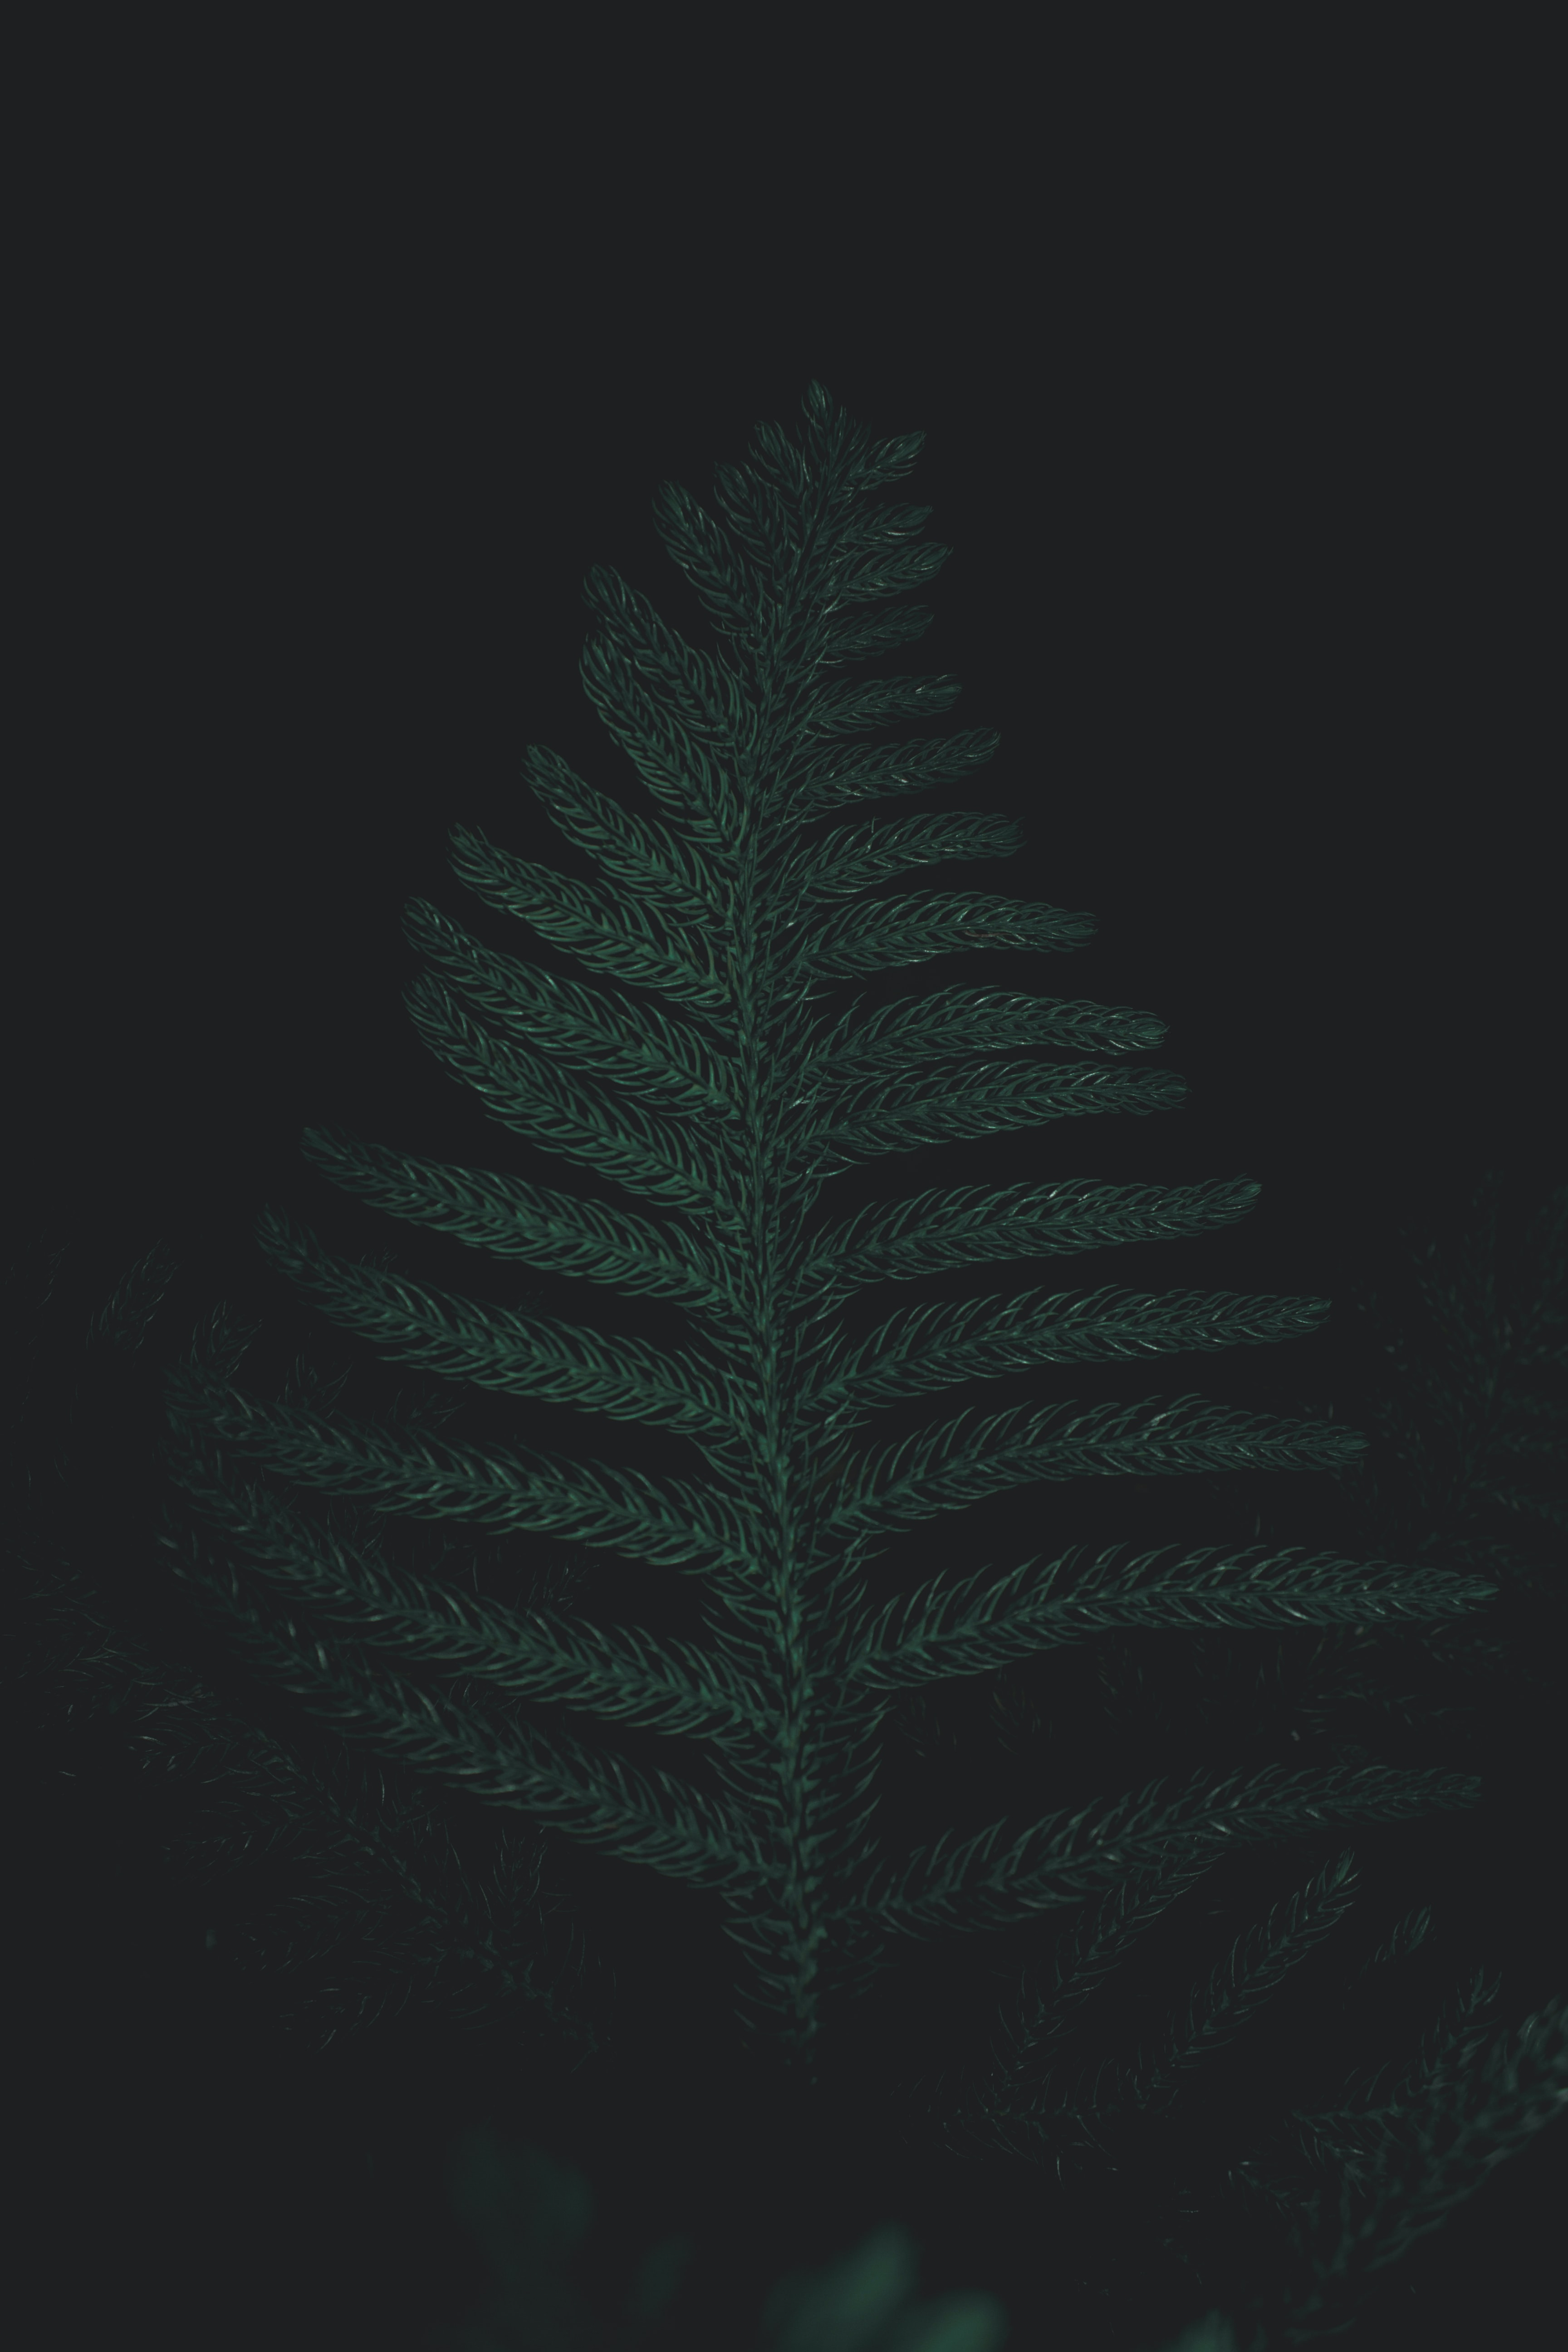 low light photography of green leafed tree